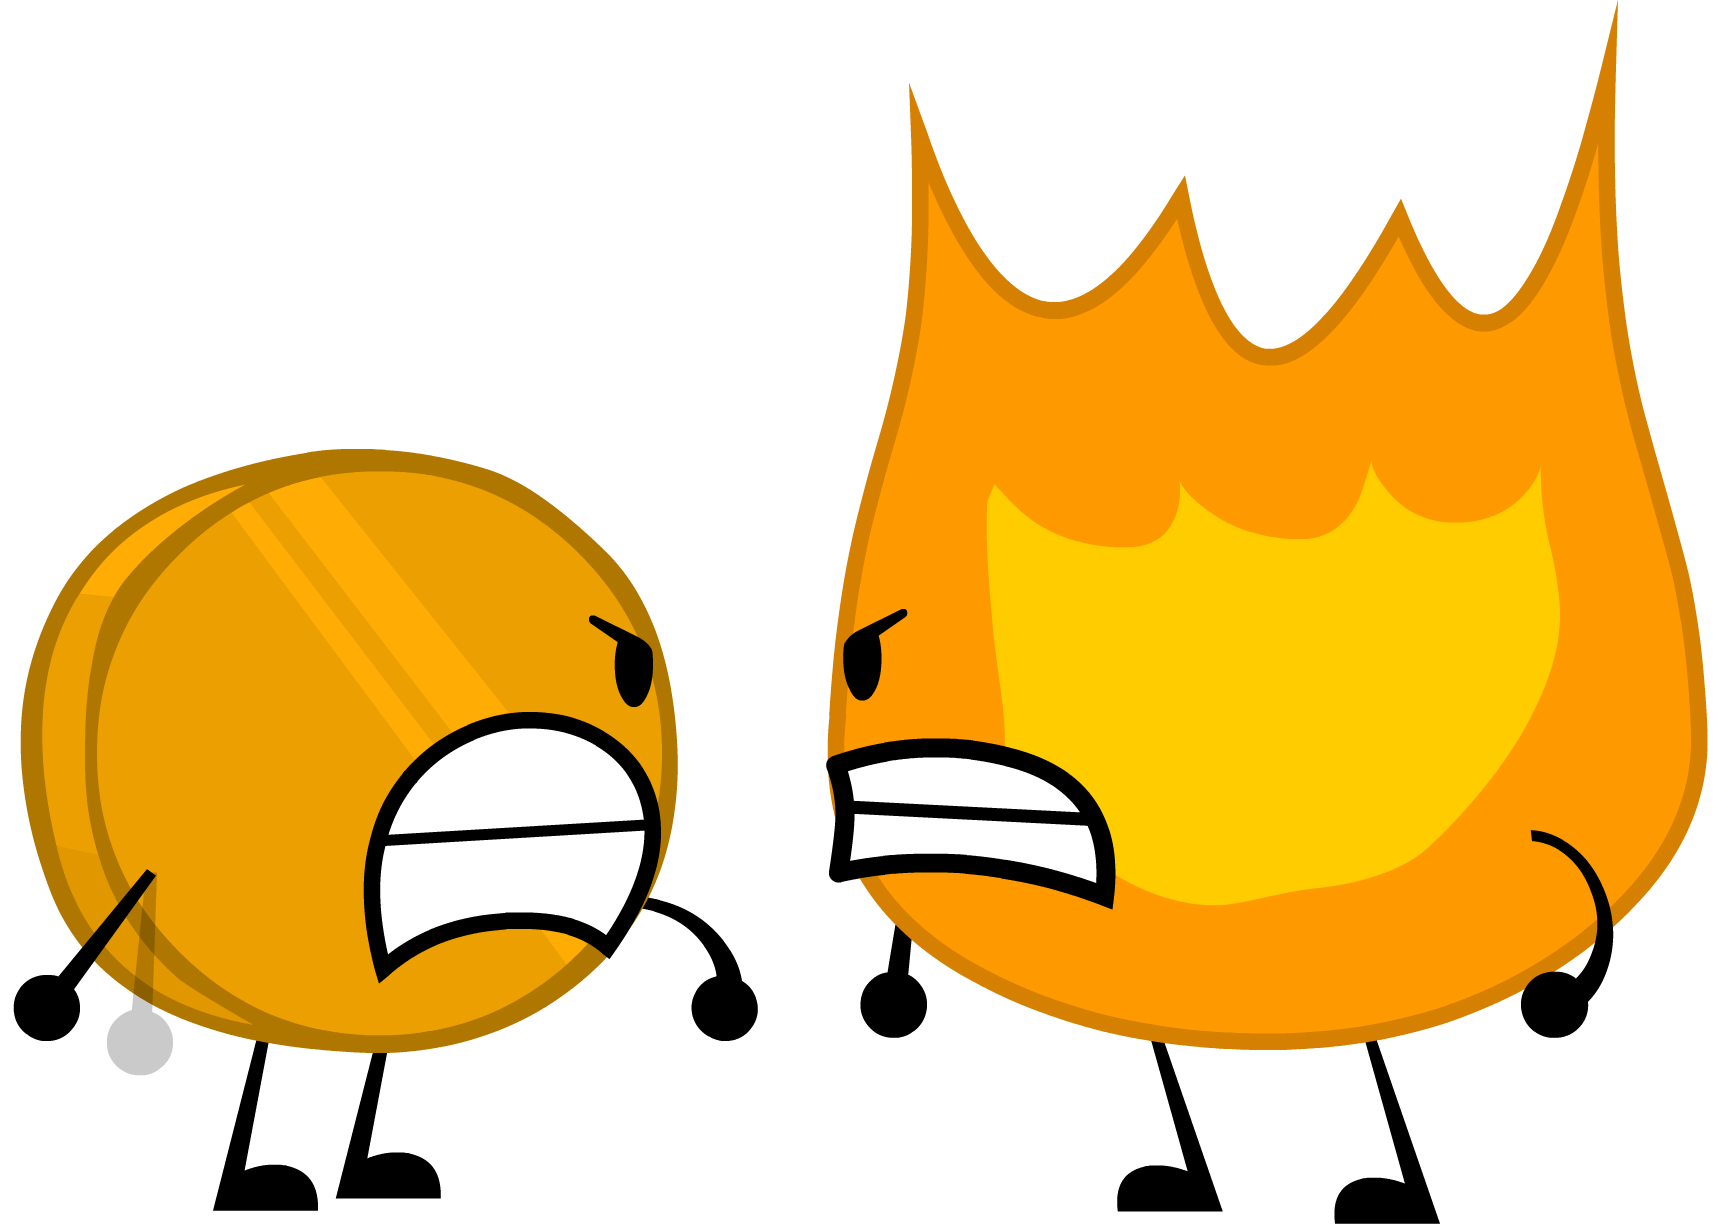 File:Coiny and Firey -Episodes 1-24-.png